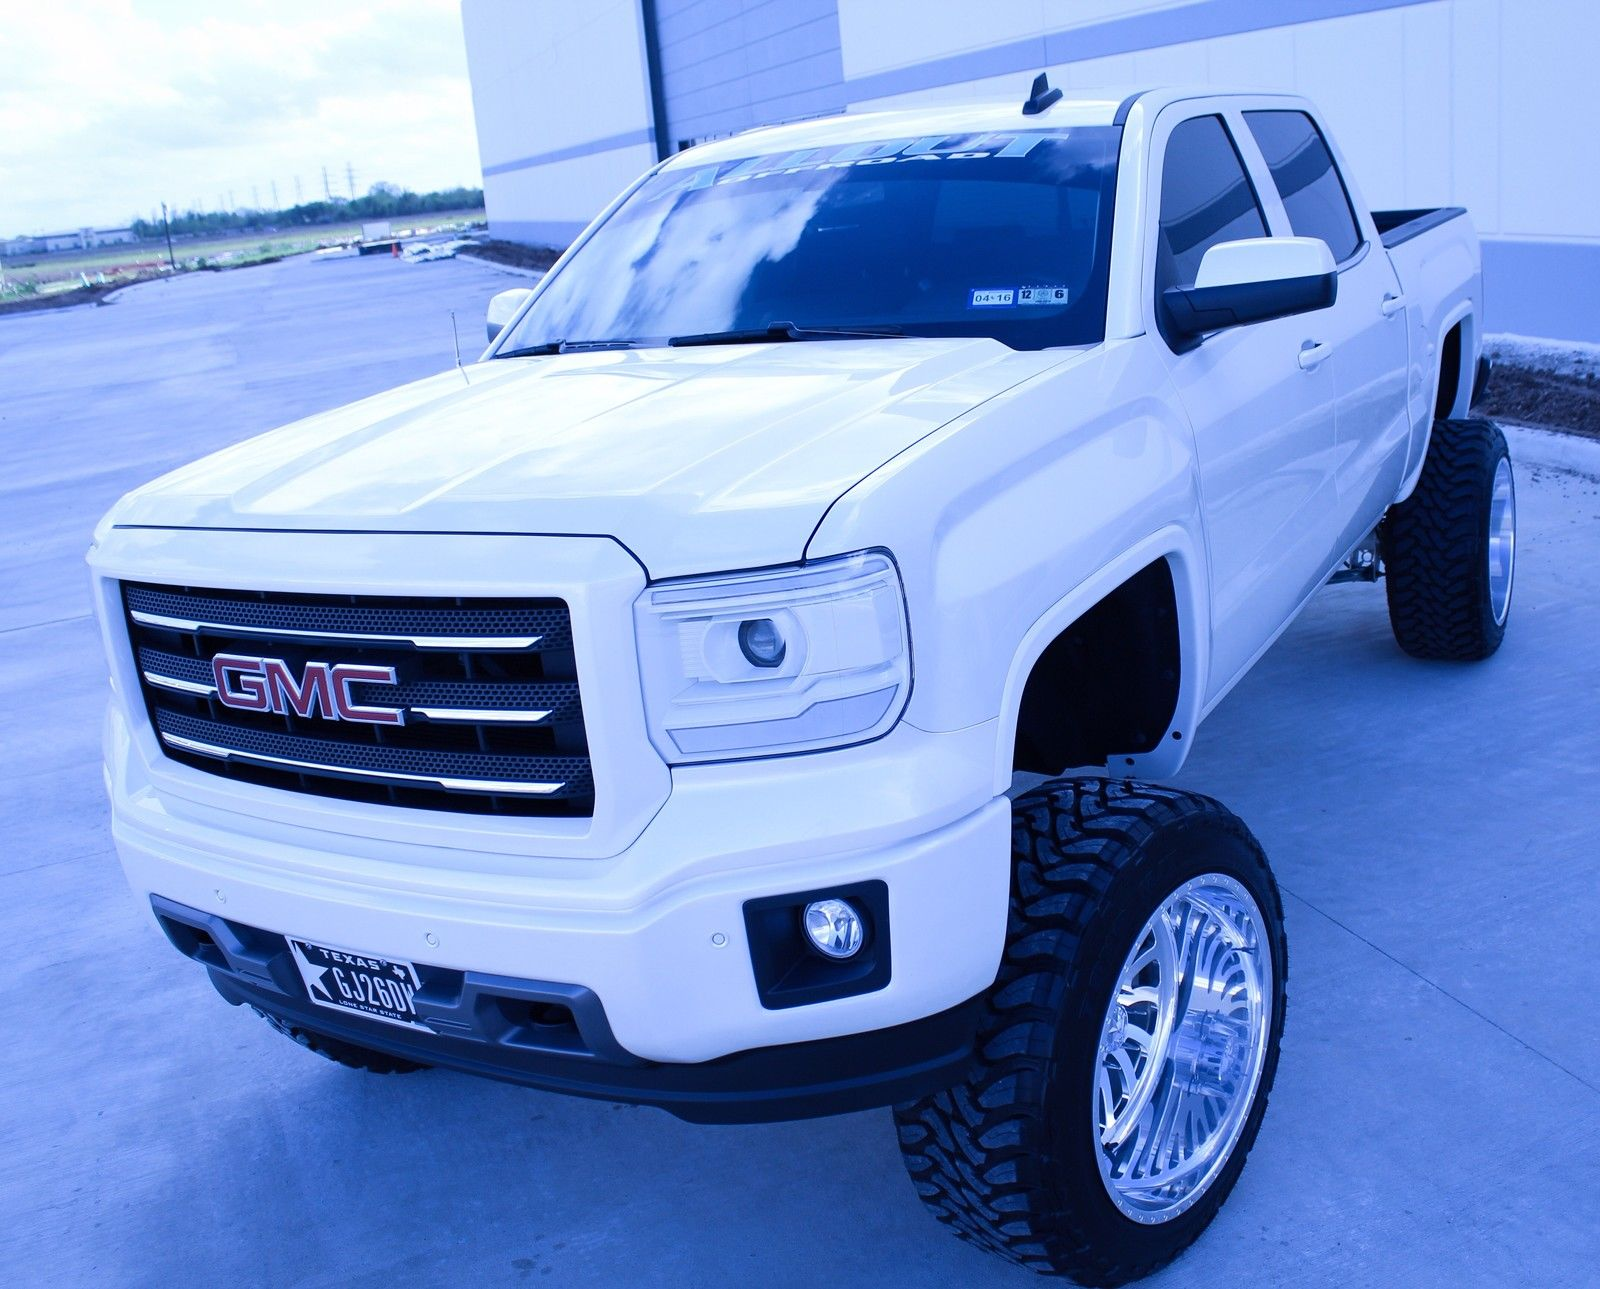 2015 GMC Sierra 1500 SLT All Terrain Crew Cab Pickup for sale